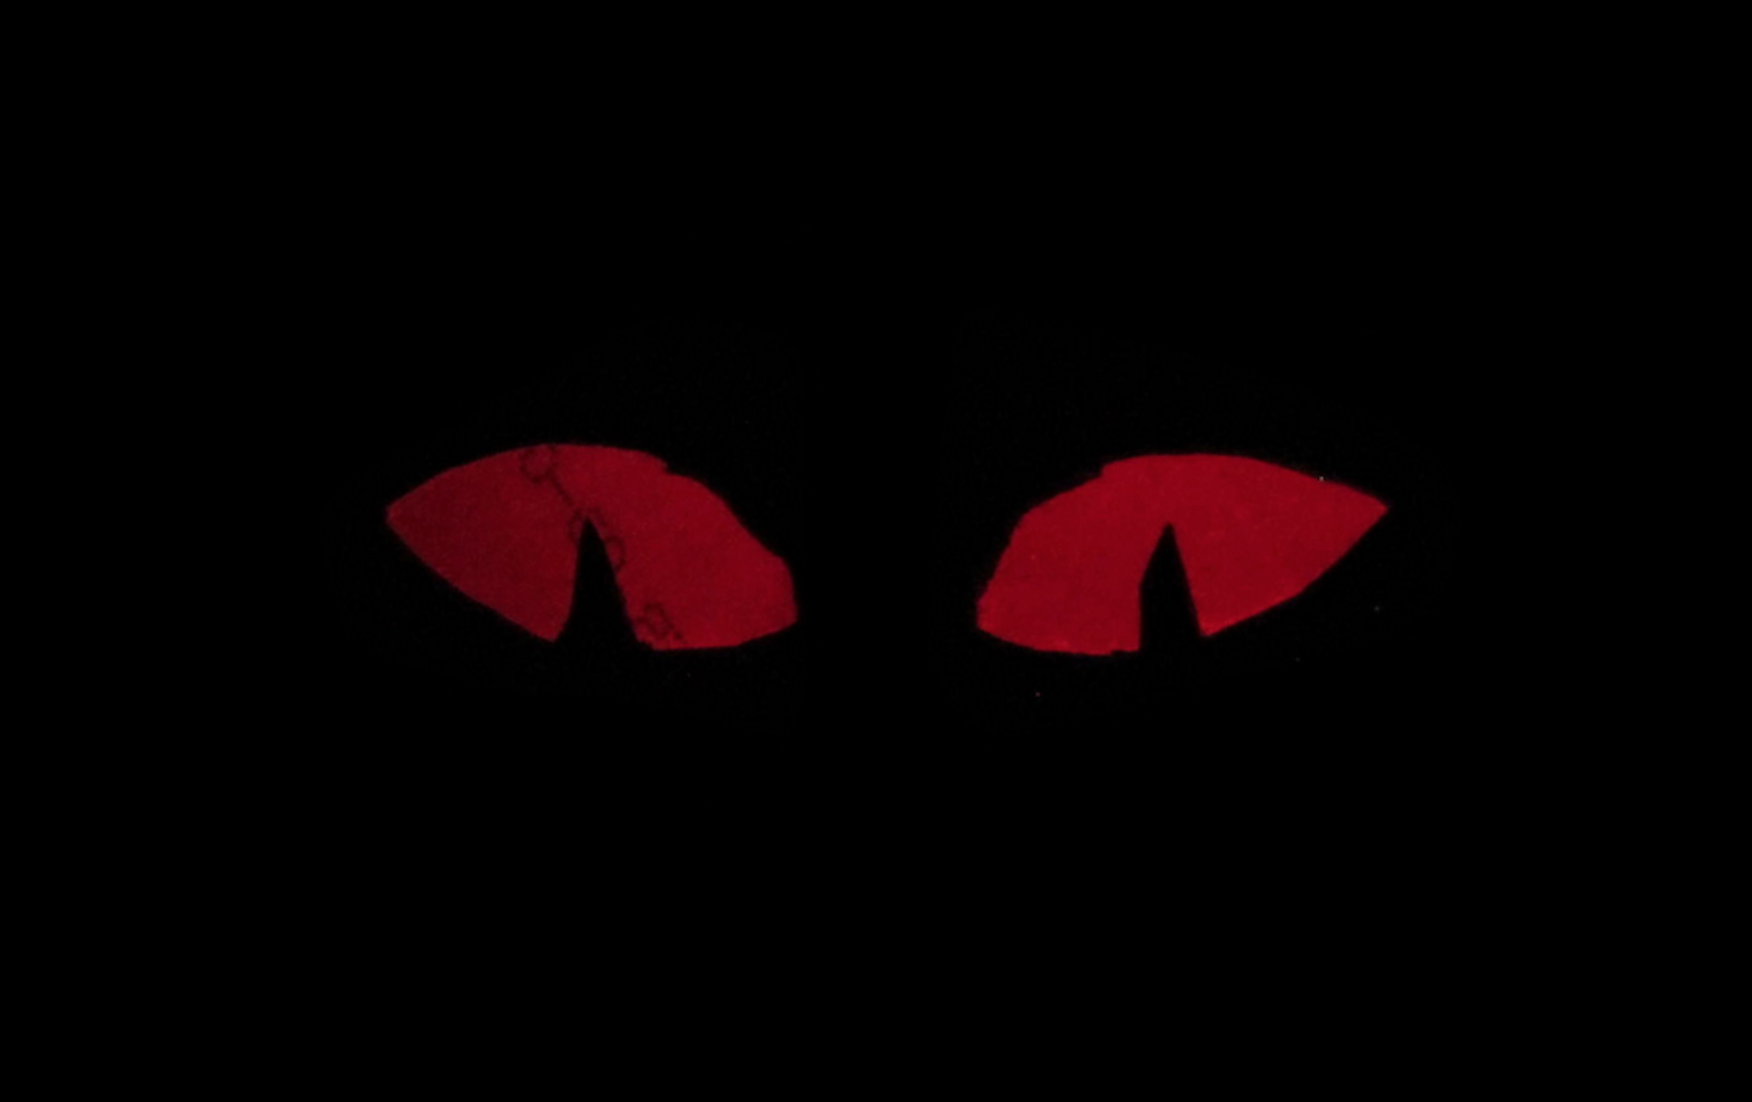 Capture_d__cran_2015-10-21___22.51.22.png Download free STL file Zheng's Creepy Peepers • Template to 3D print, Zheng3